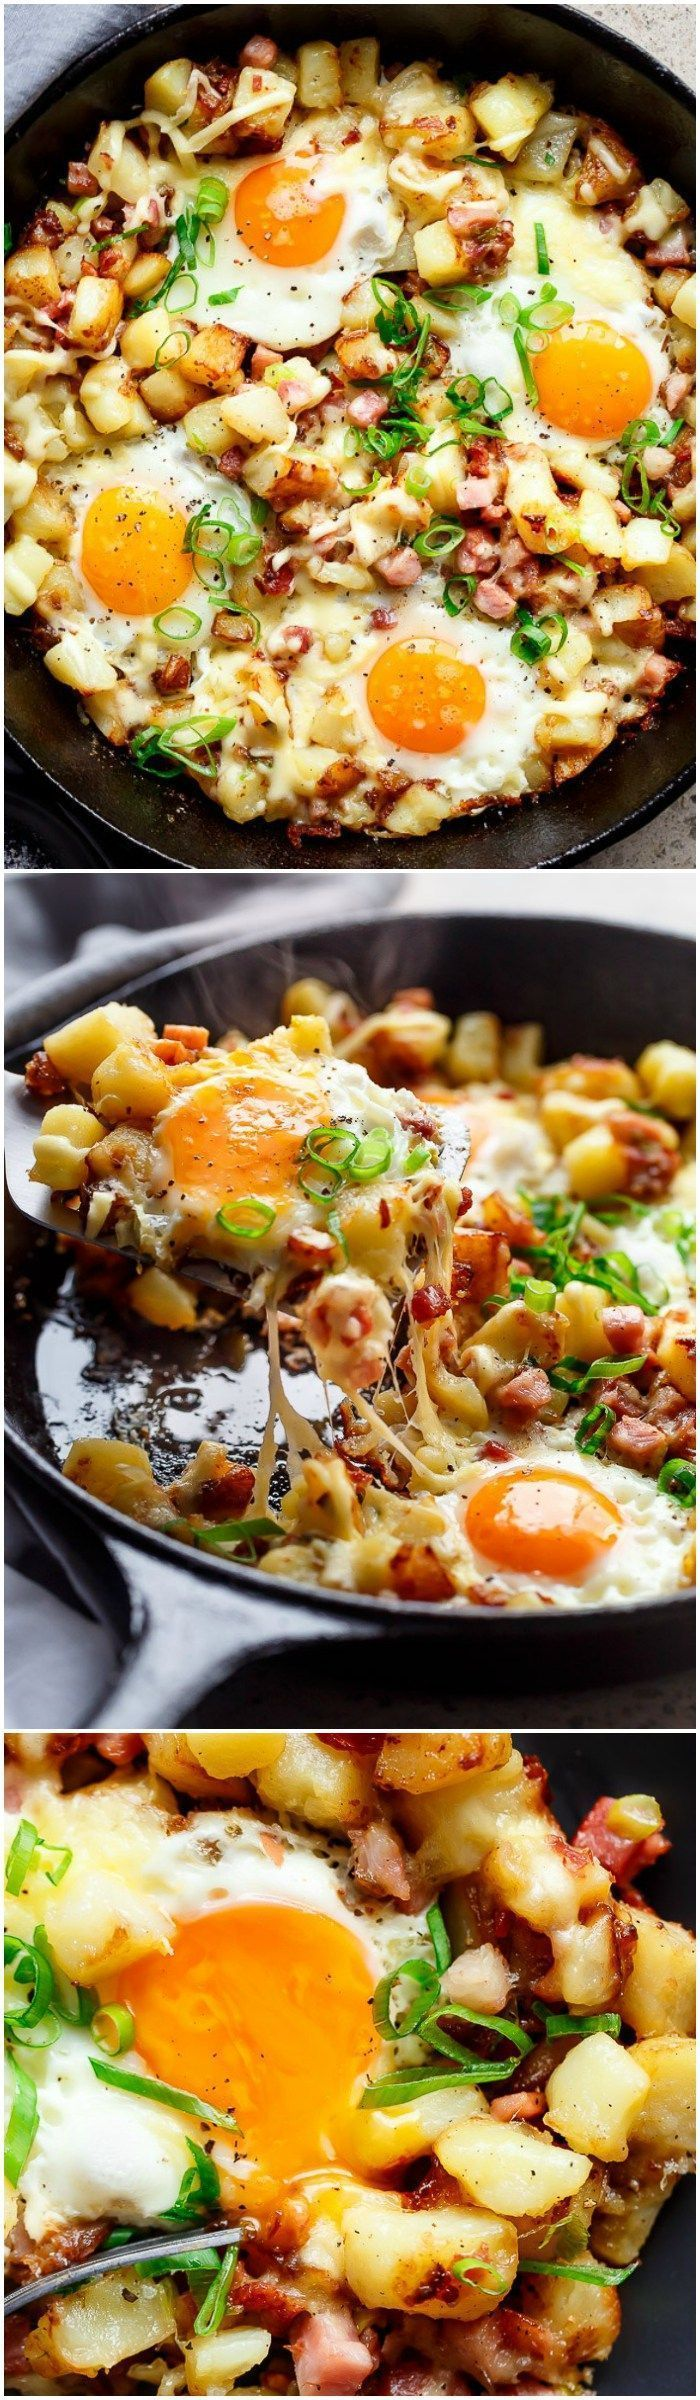 Cheesy Bacon and Egg Hash for breakfast, brunch, lunch or dinner! Easy to make and ready in 30 minutes -- all in one skillet or pan! | cafedelites.com